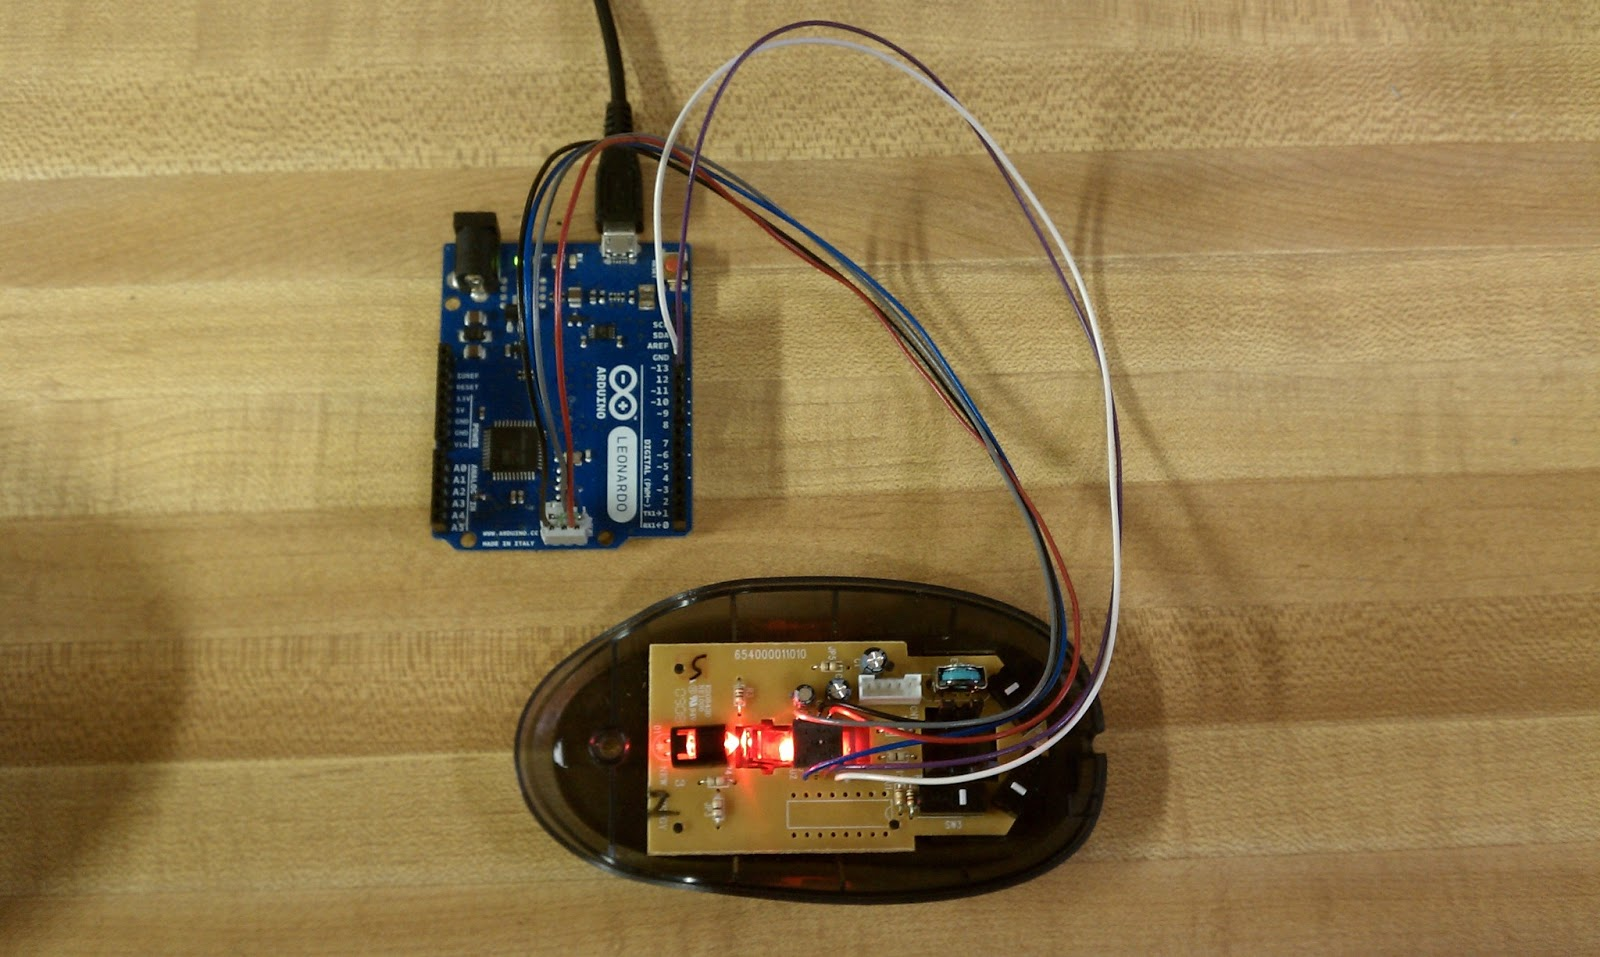 Arduino ide version for esp8266